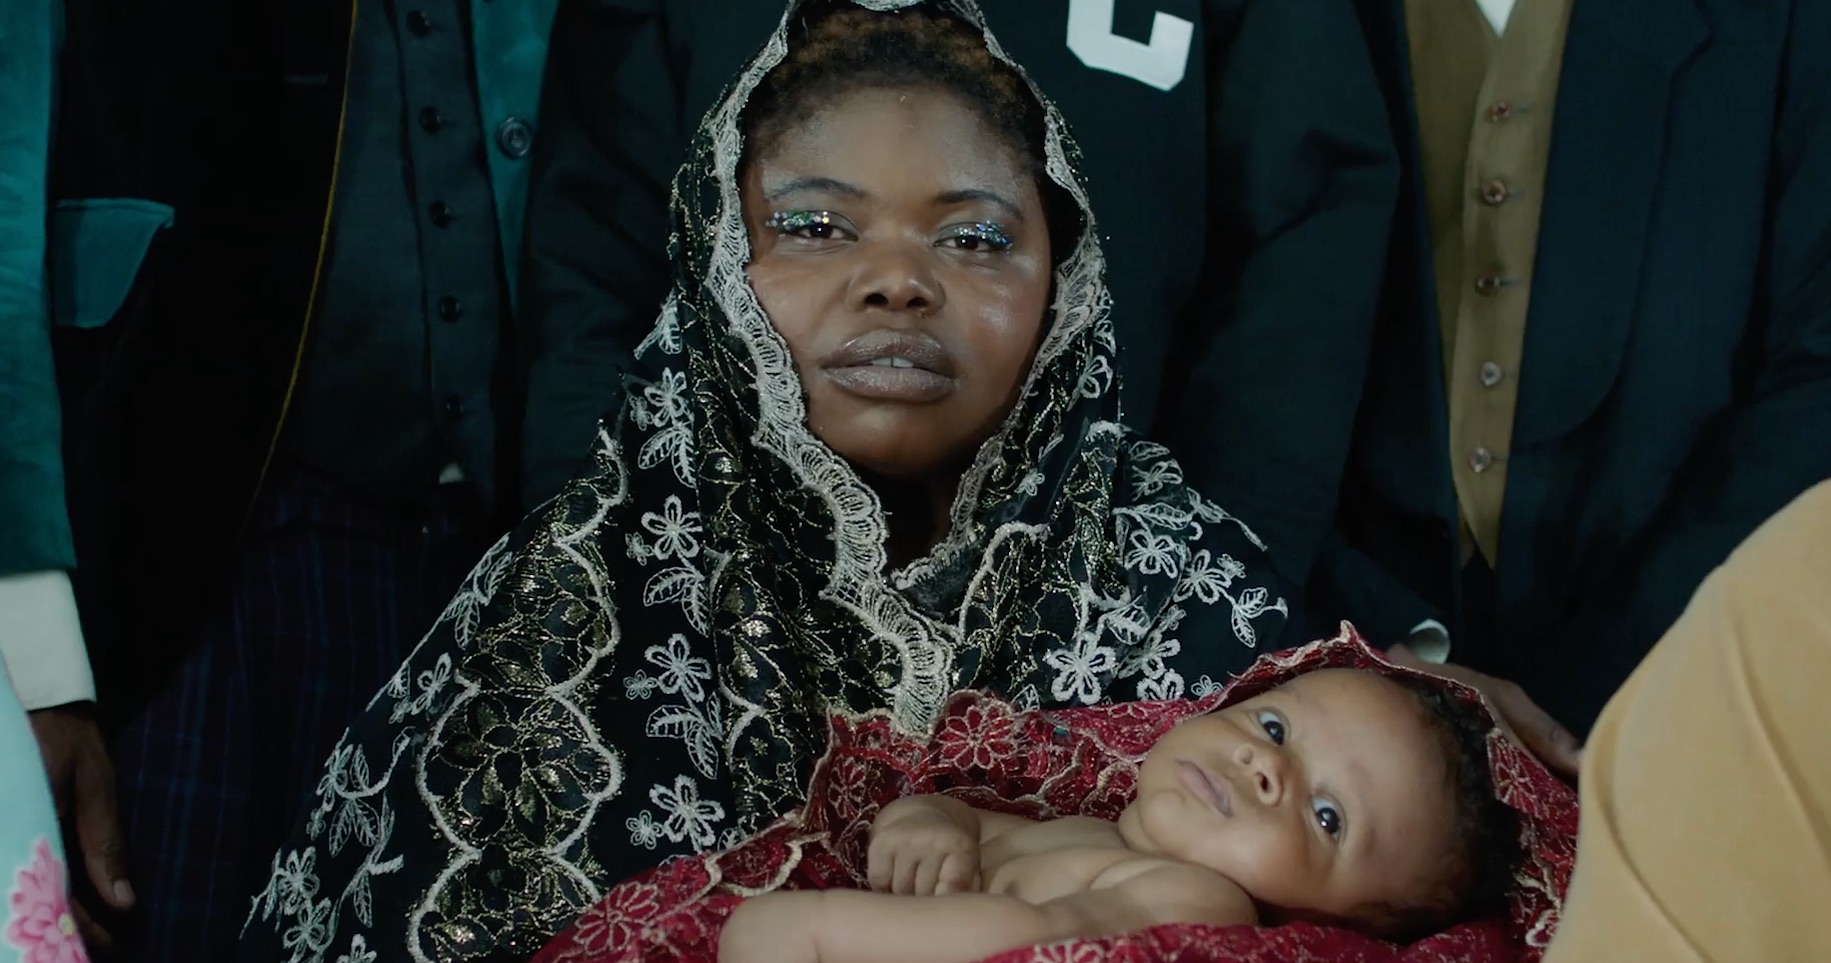 The still image shows a Black individual with a black and white veil, covered in floral motives, which covered the head. The individual holds a baby in their lap. The baby is watching the camera with curious eyes and is covered in a red scarf.